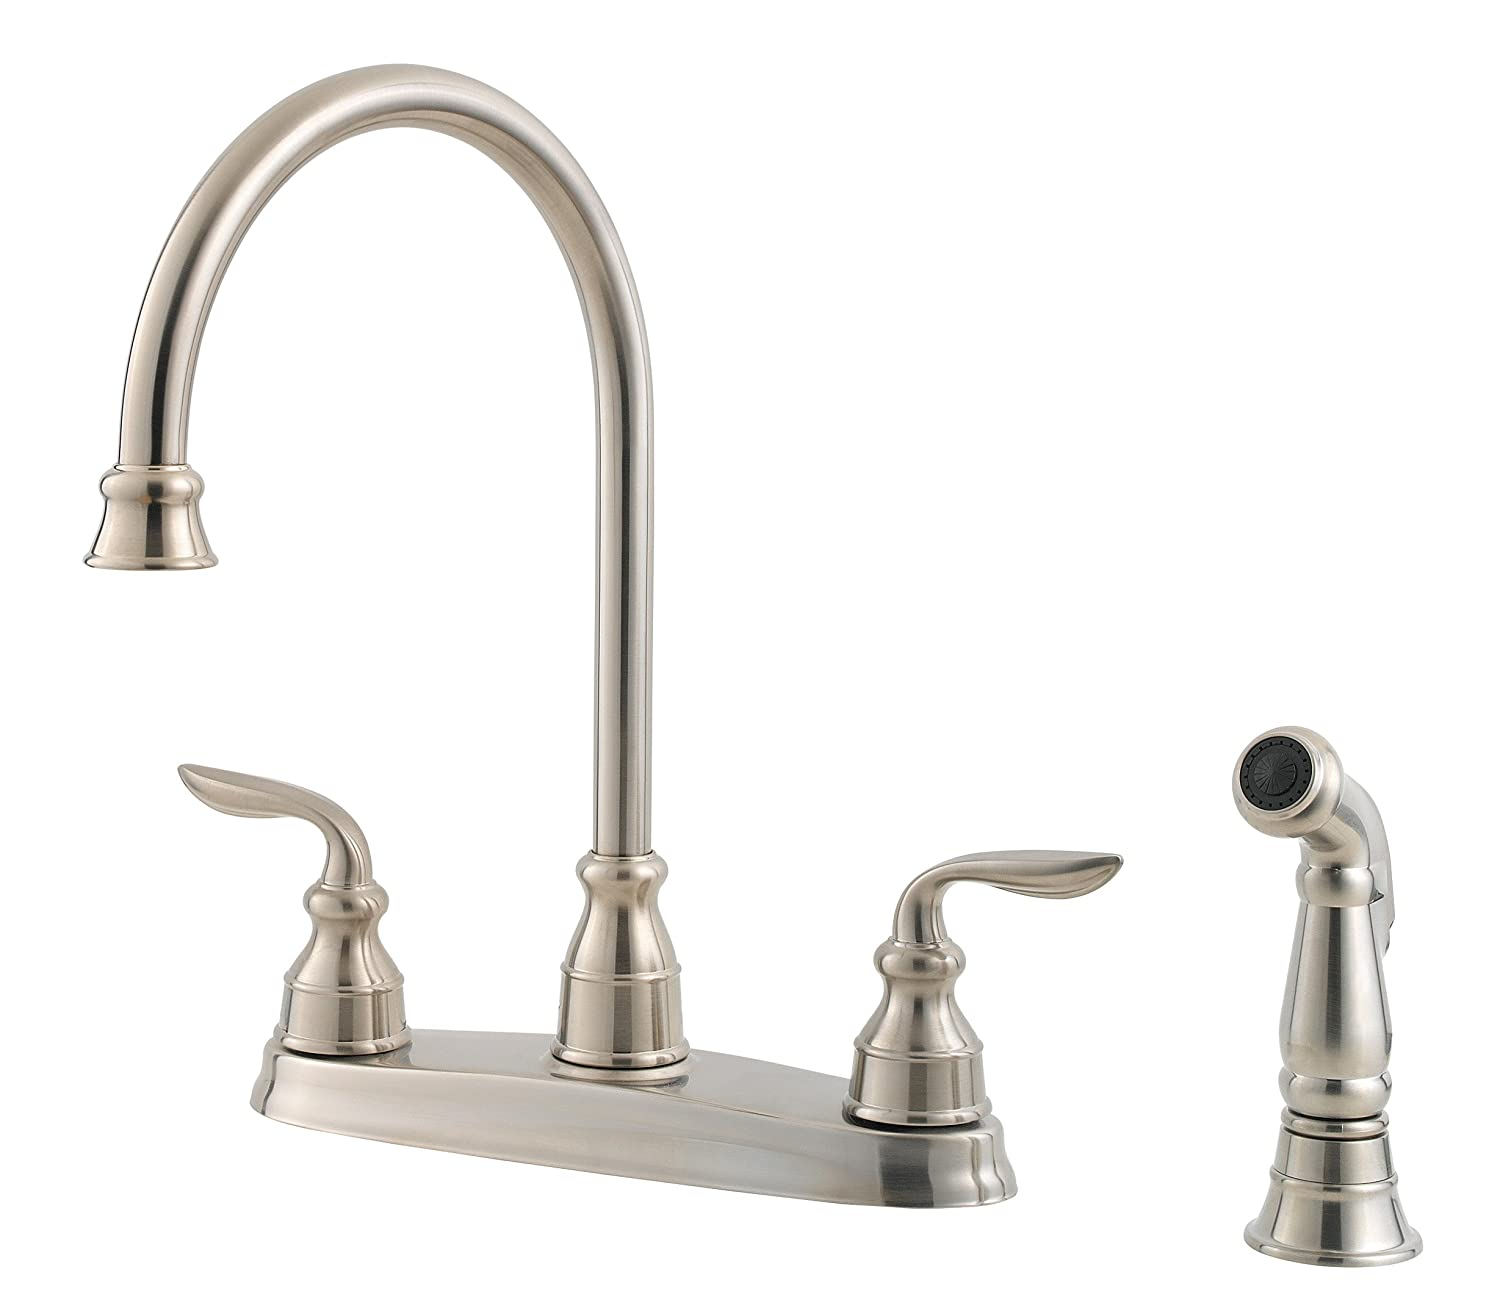 Pfister LF0364CBY Avalon 2 Handle Kitchen Faucet With Side Spray, Tuscan  Bronze, 1.8 Gpm     Amazon.com